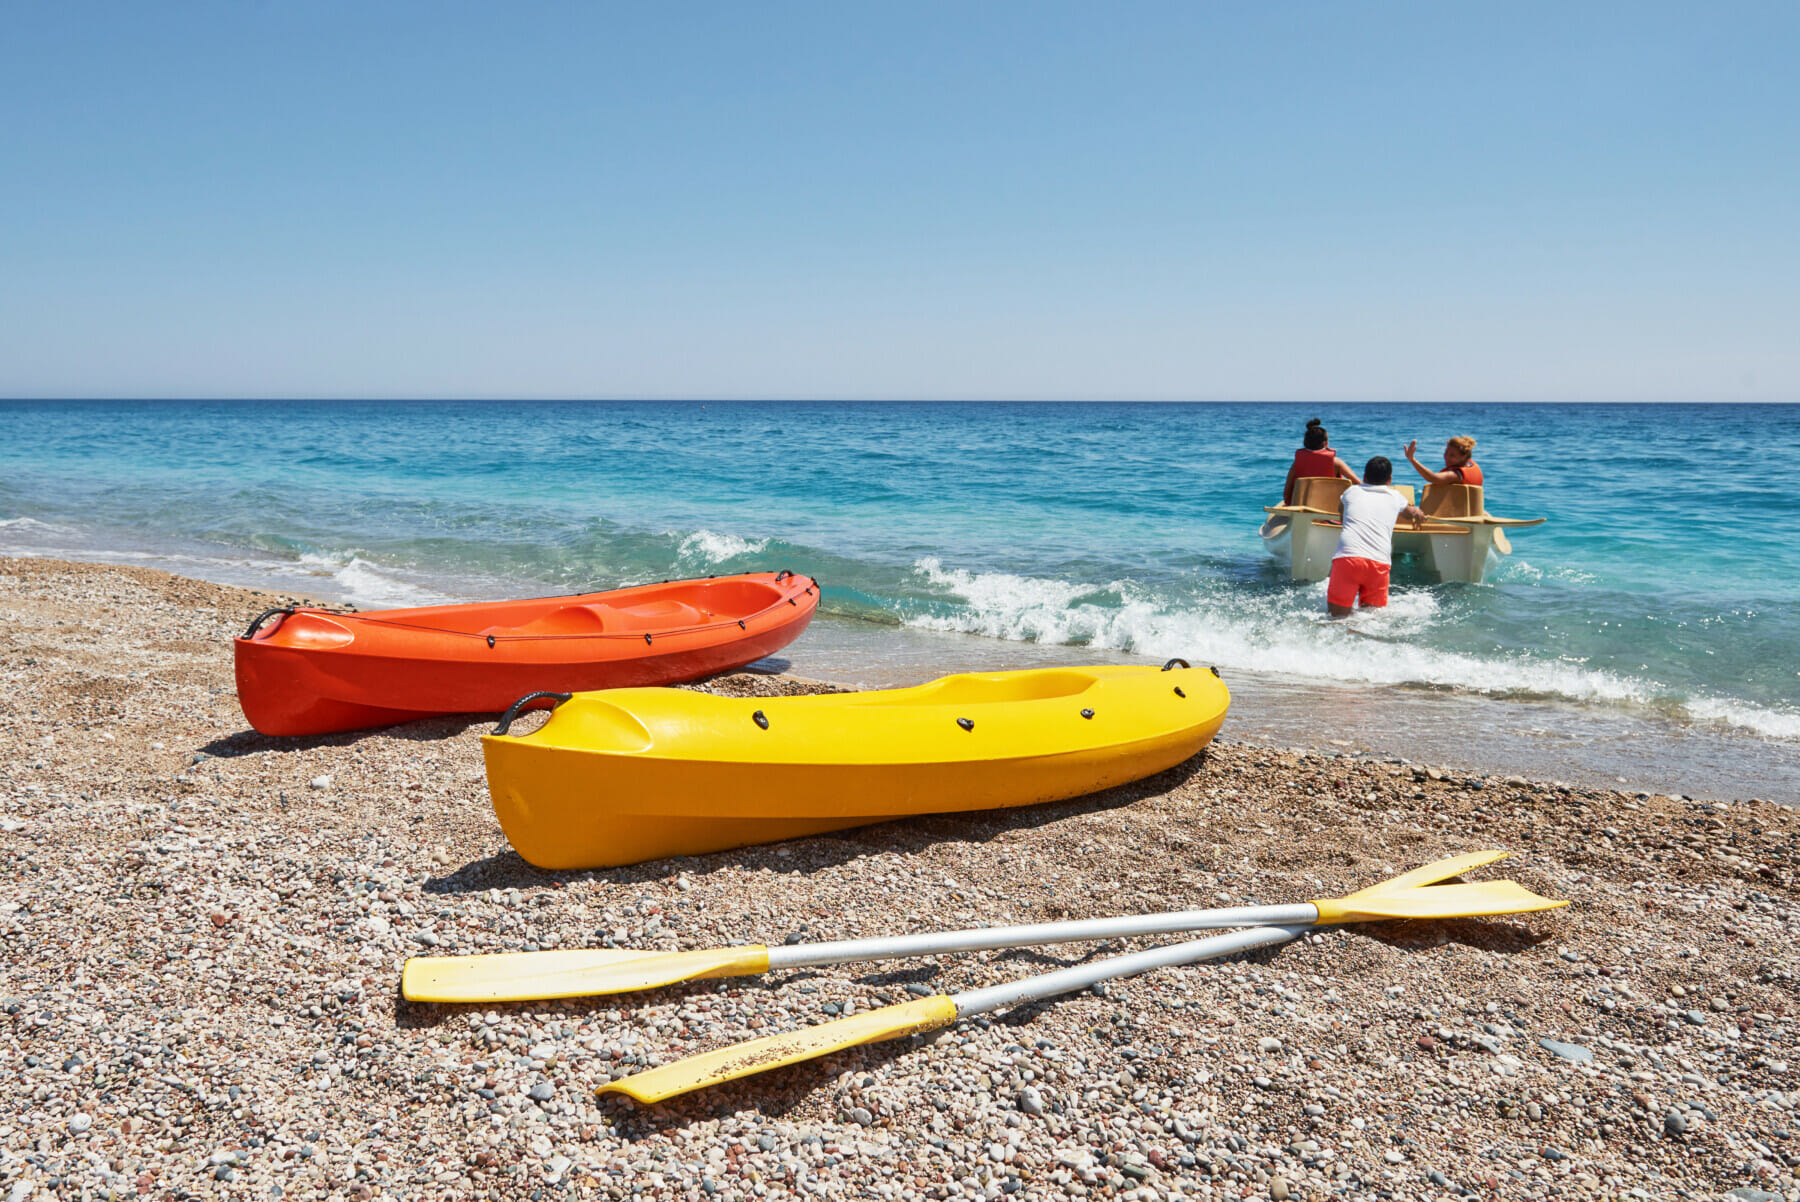 Colorful kayaks on the beach. Beautiful landscape